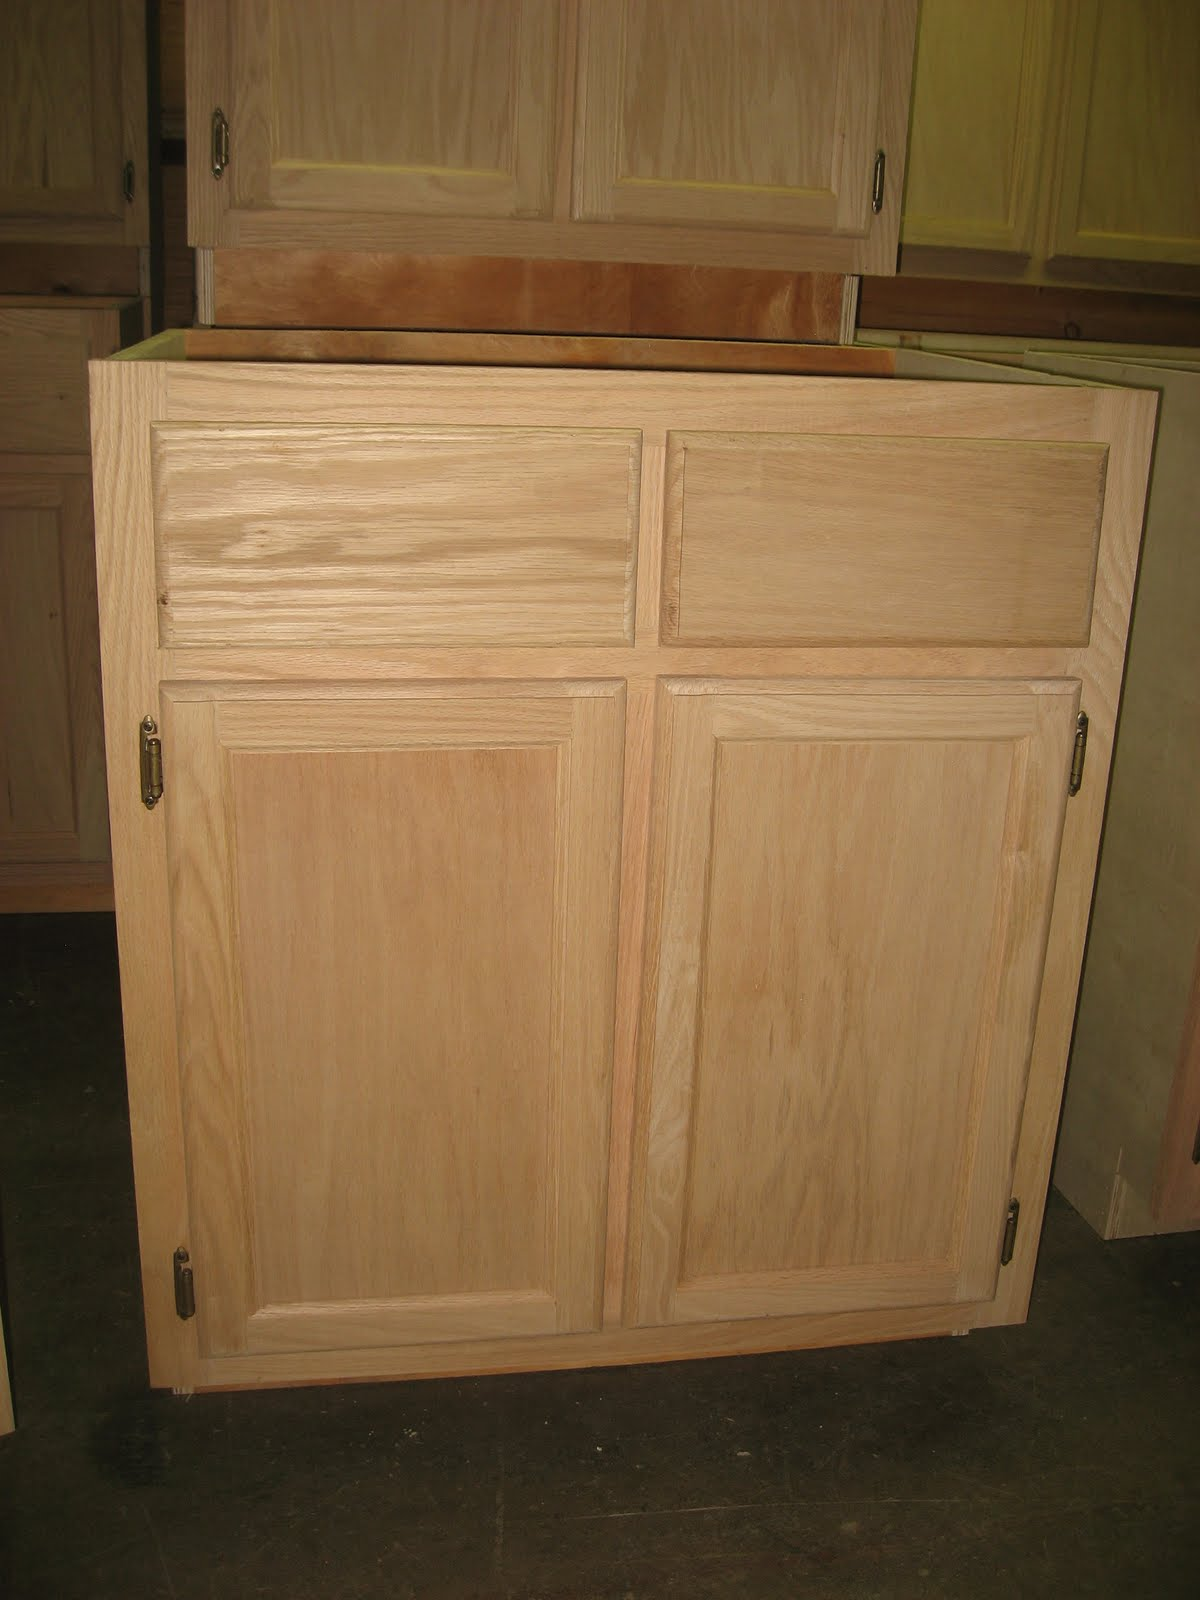 Cheap Unfinished Cabinets For Kitchens Delta Trinsic Kitchen Faucet Blue Ridge Surplus Oak